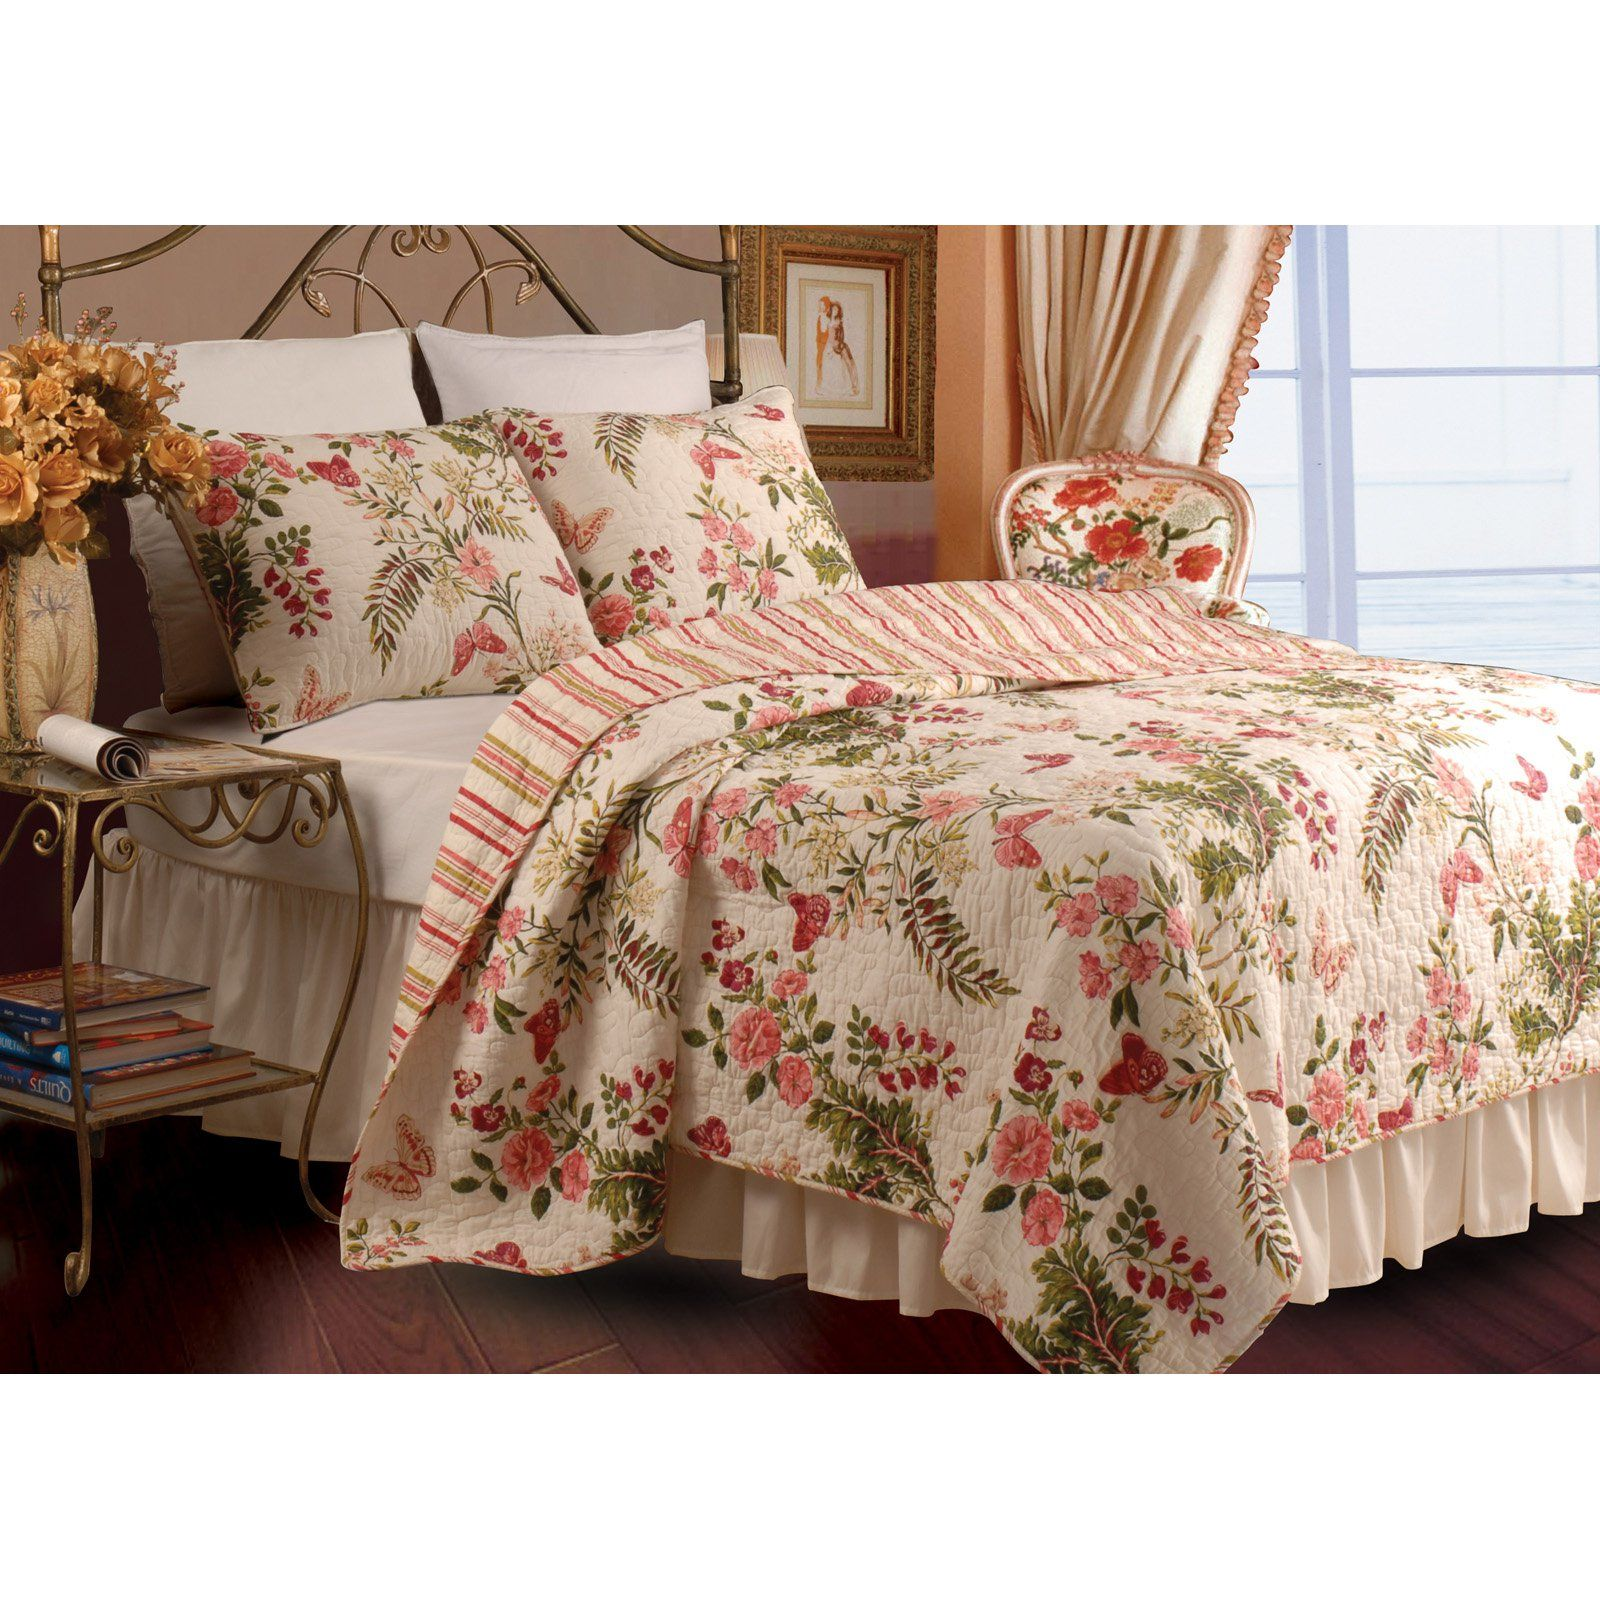 Have To Have It Greenland Home Fashions Butterflies 2